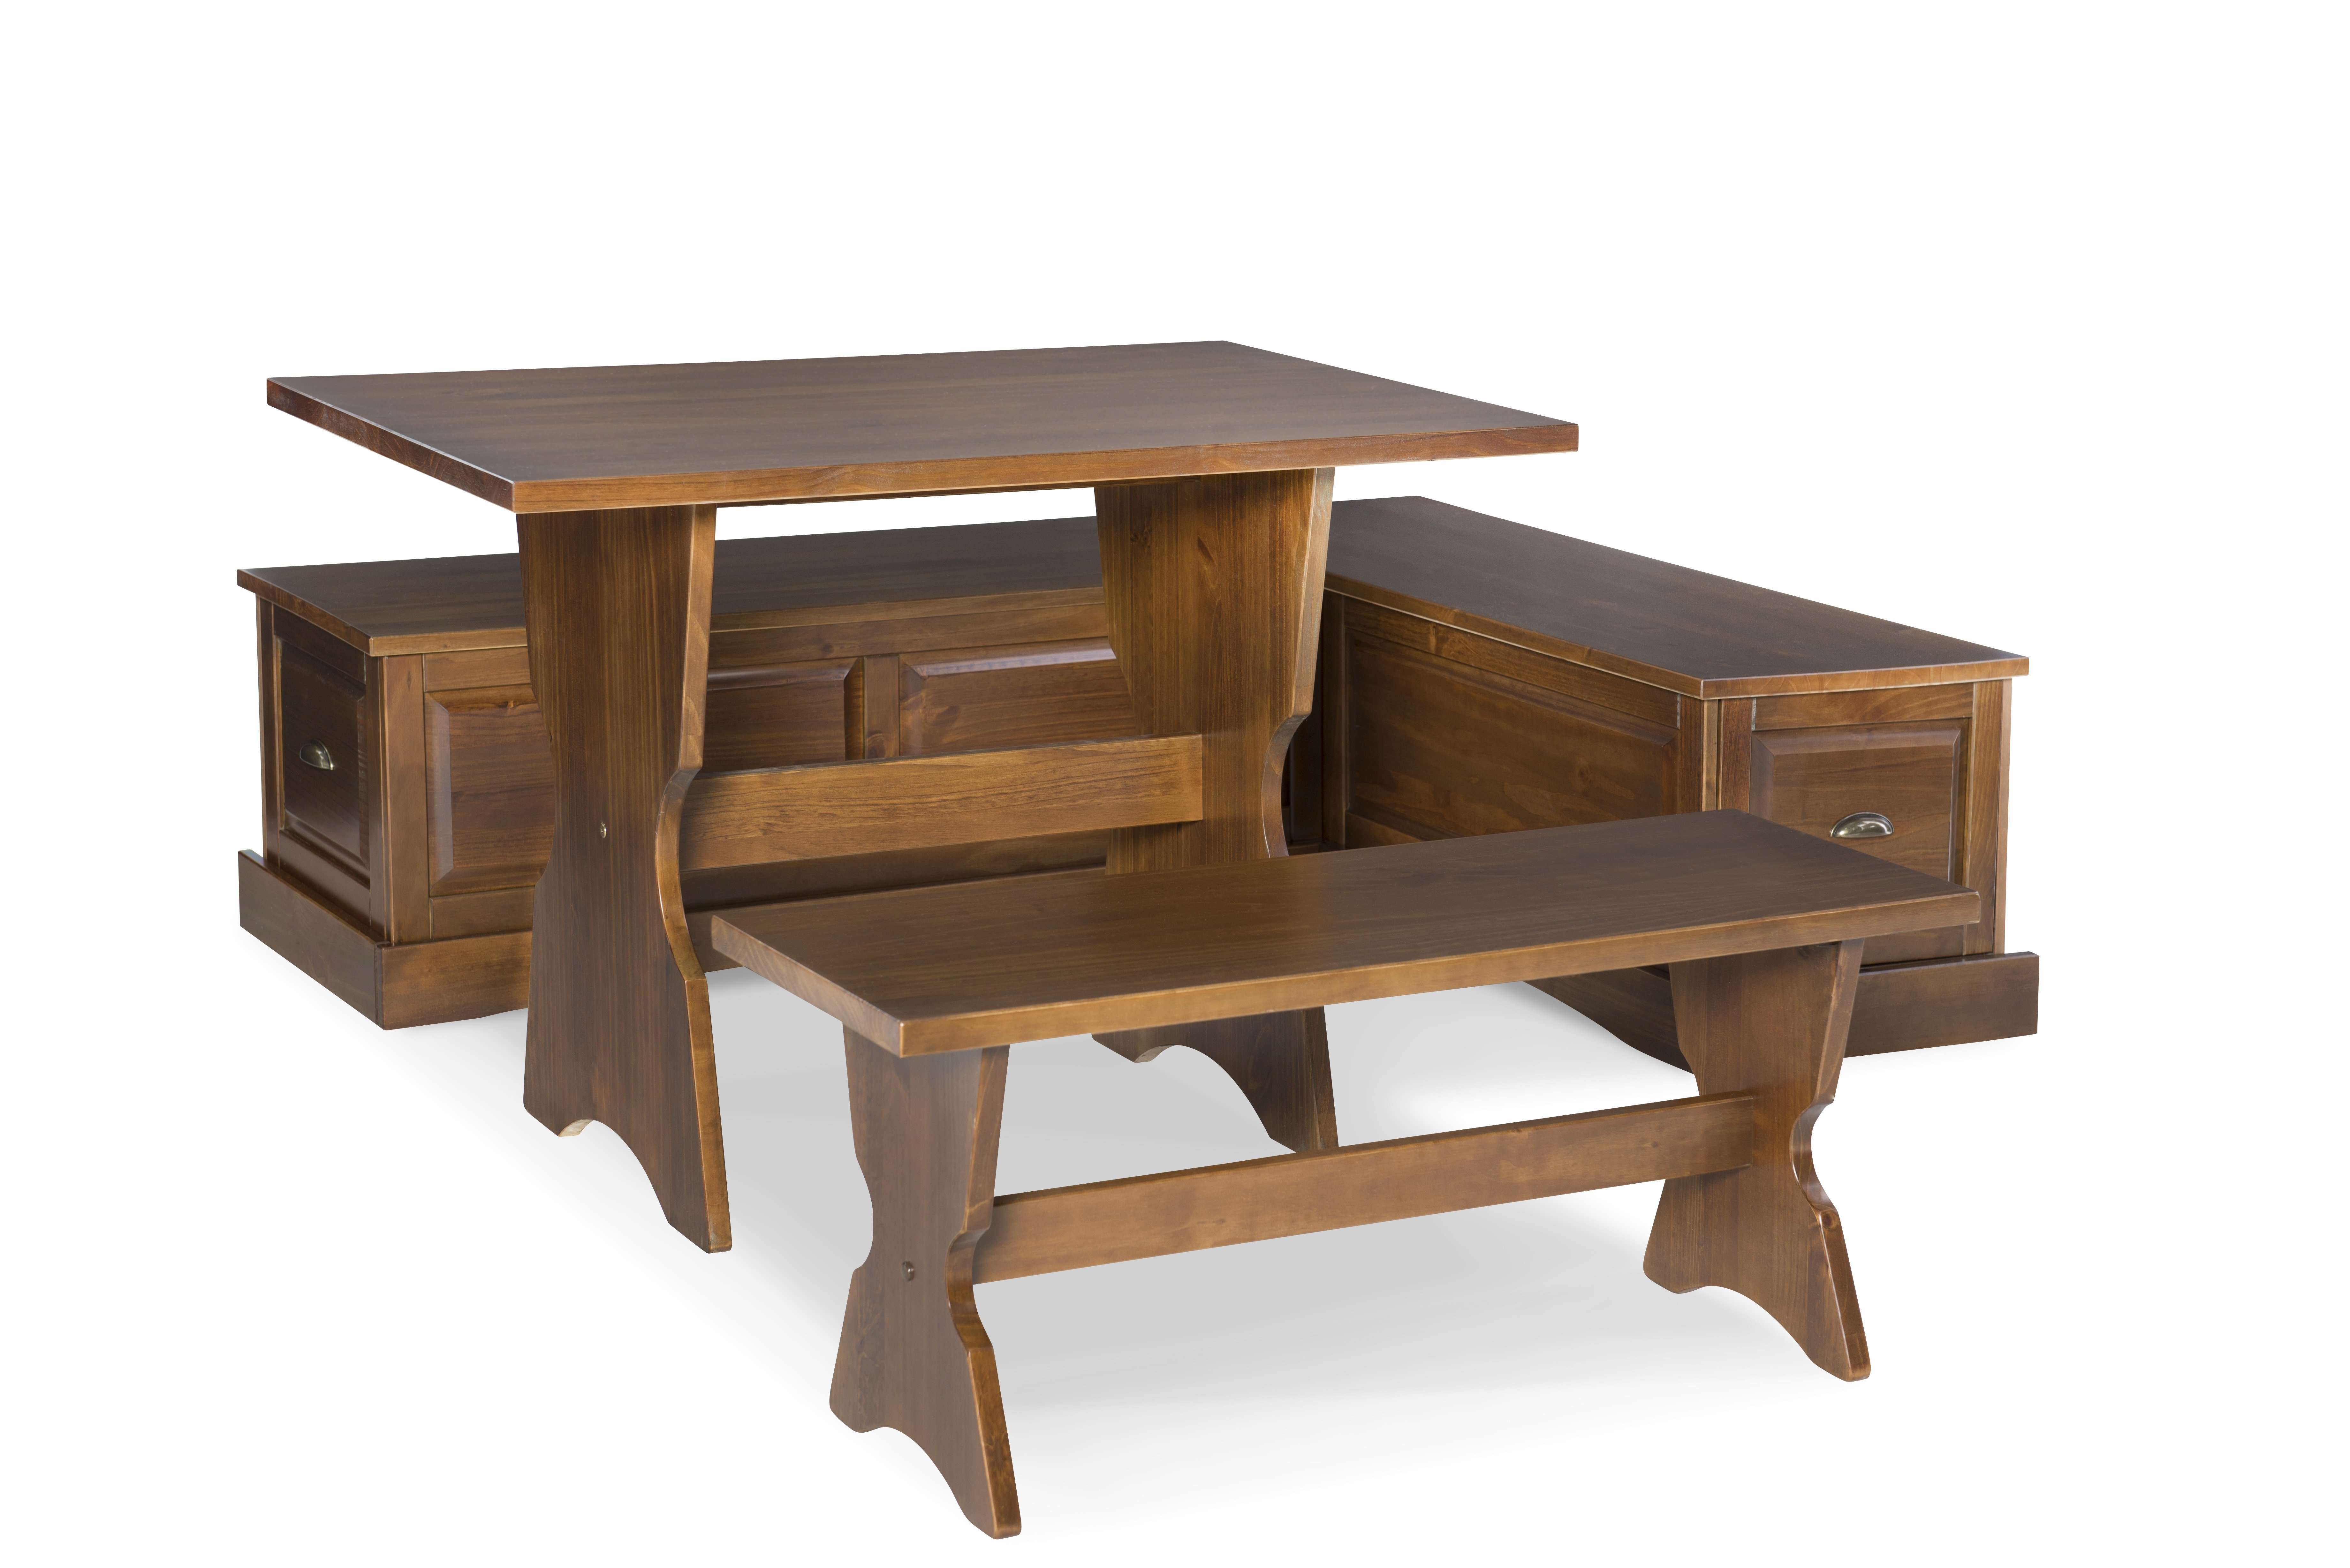 Three Posts Dearborn 3 Piece Breakfast Nook Dining Set With Most Recently Released 3 Piece Breakfast Nook Dinning Set (View 18 of 20)